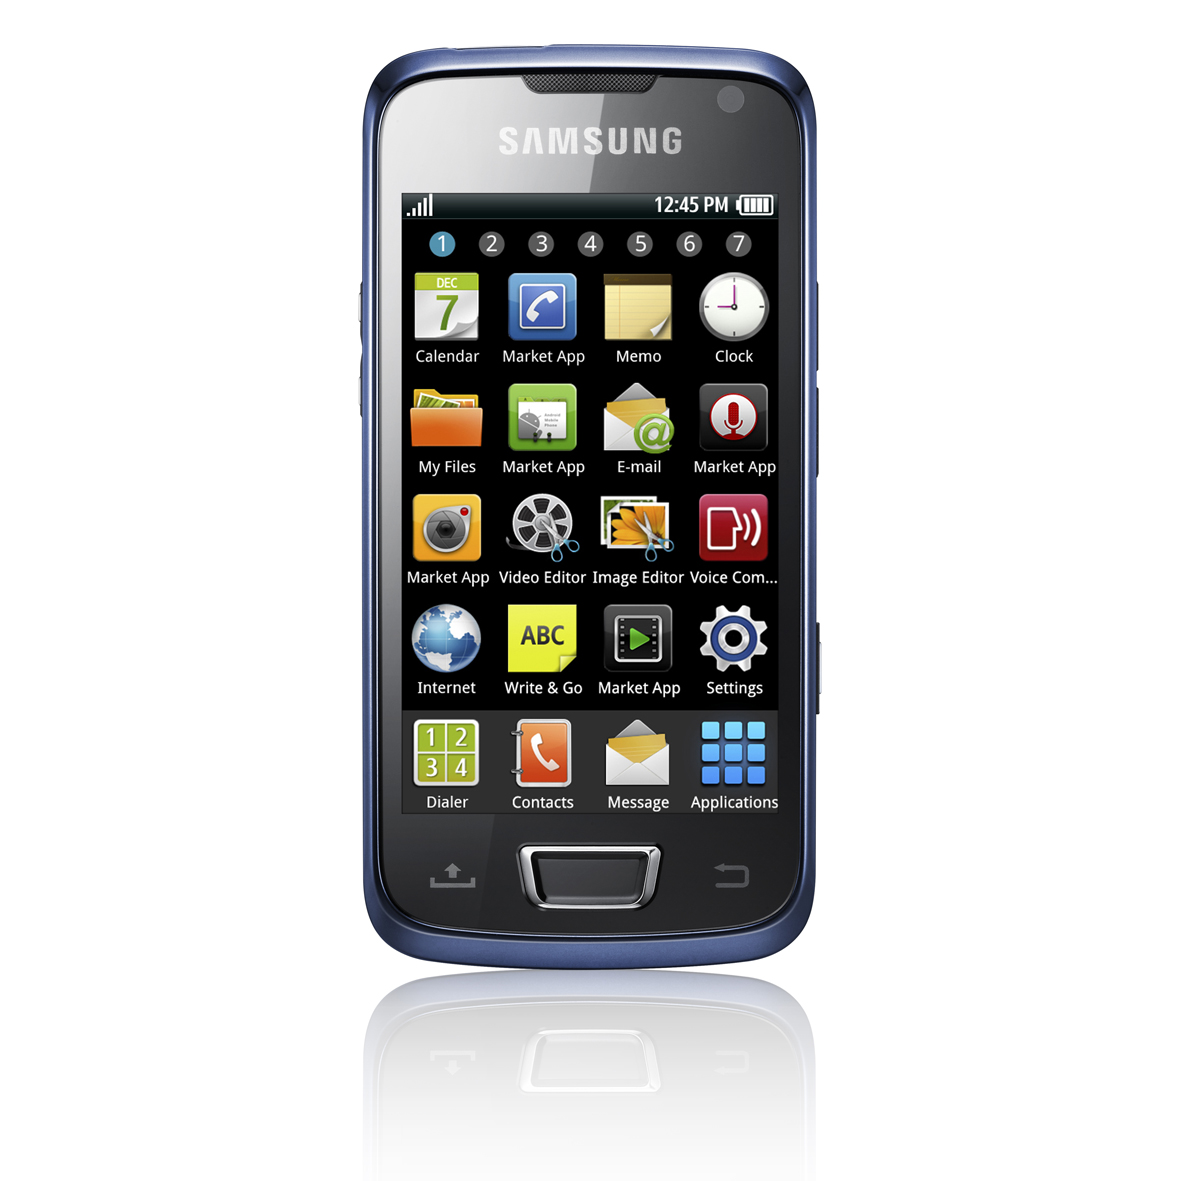 Samsung i8520 Galaxy Beam built in projector Android smartphone